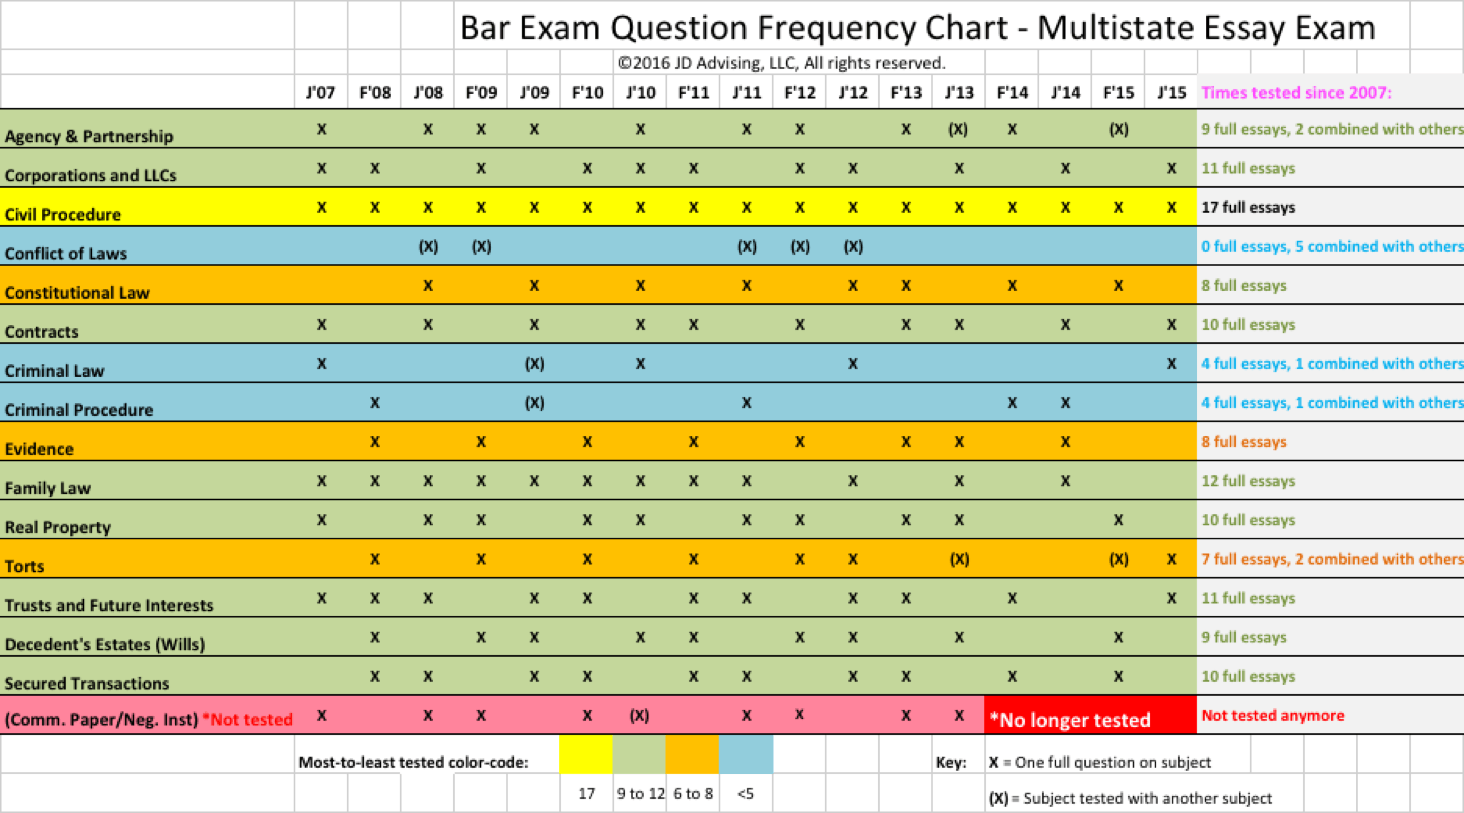 002 Essay Example Bar Essays Mee Chart Incredible Baressays Coupon Code Baressays.com Ny Predictions Full